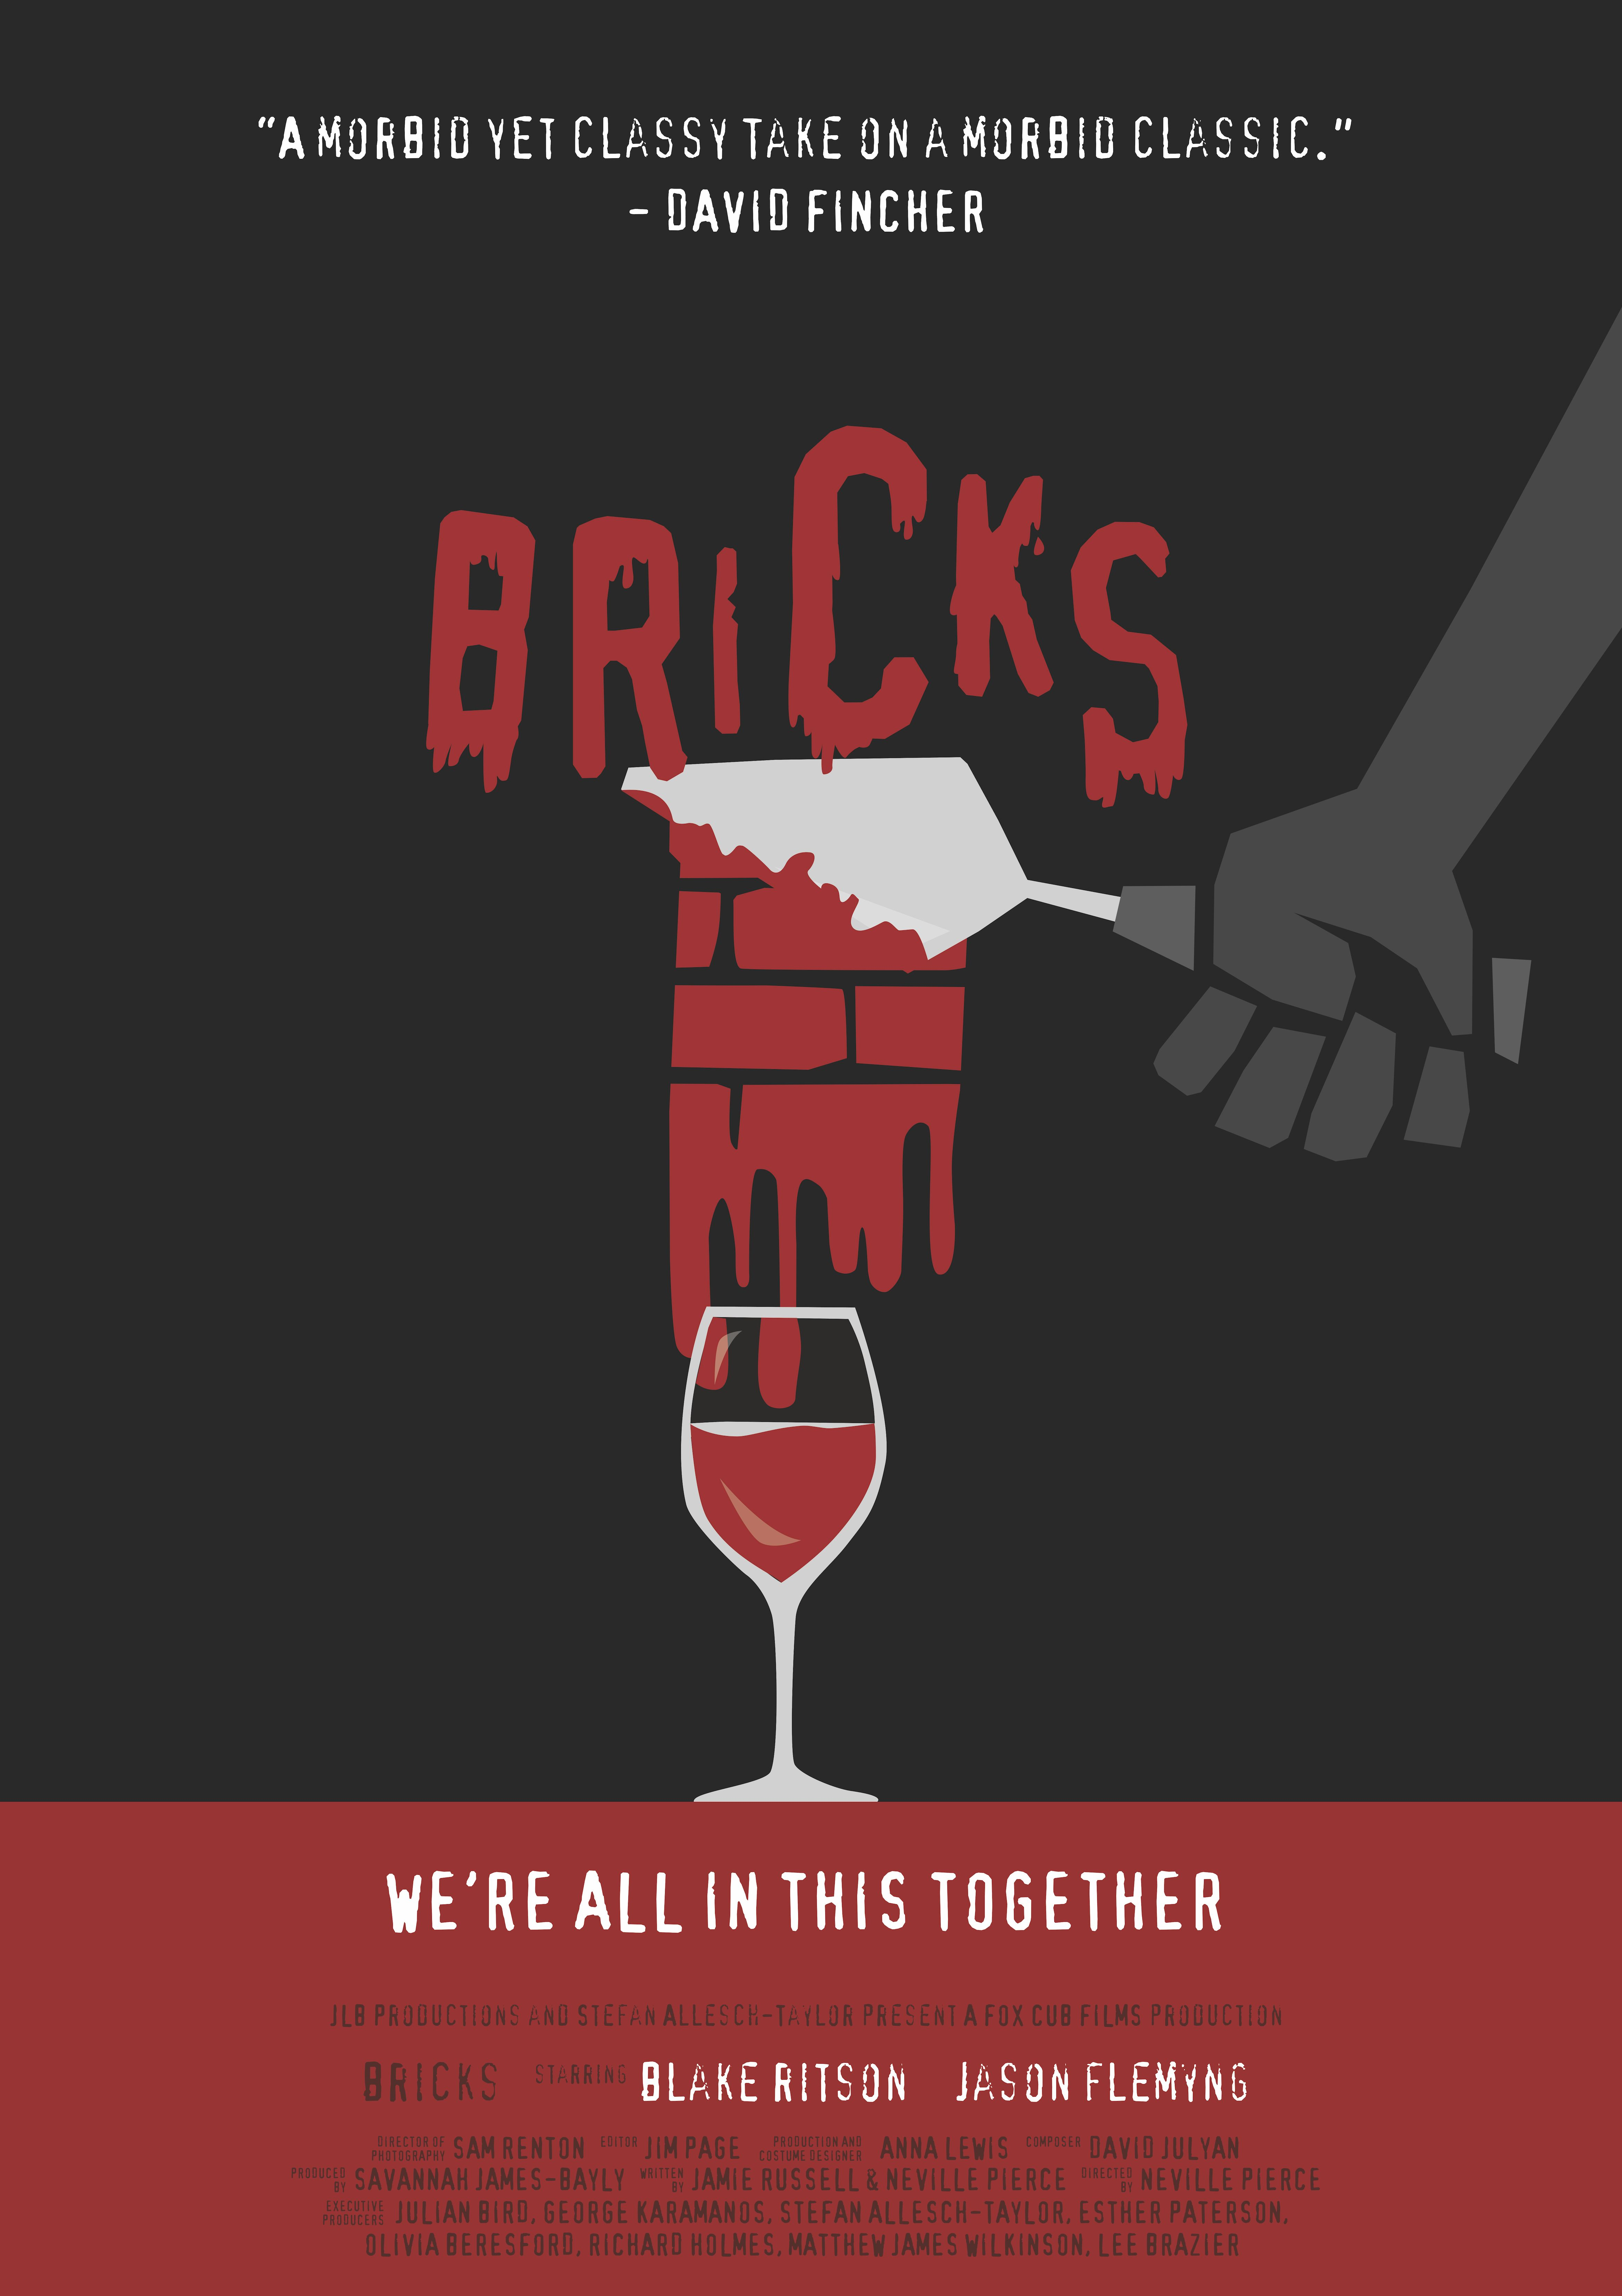 A Tense Thriller About Wealth Wine And The Art Of Bricklaying Bricks Updates Edgar Allan Poe S Classic Reve Movie Posters Free Movies Online Hd Movies Online